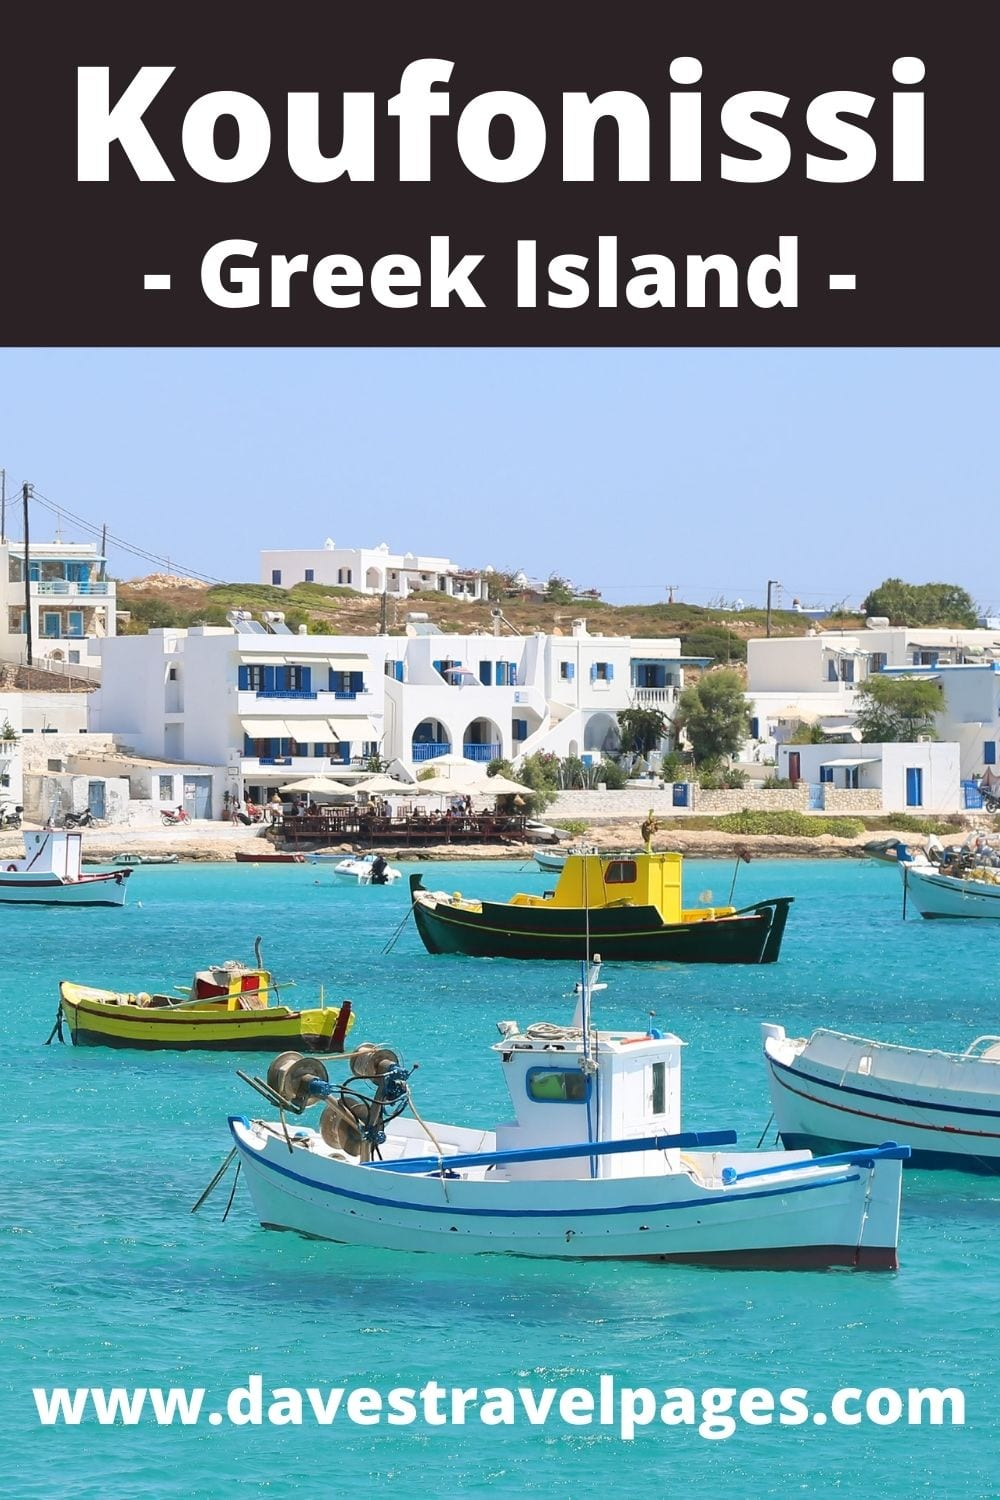 How to travel from Mykonos to Koufonissi in Greece